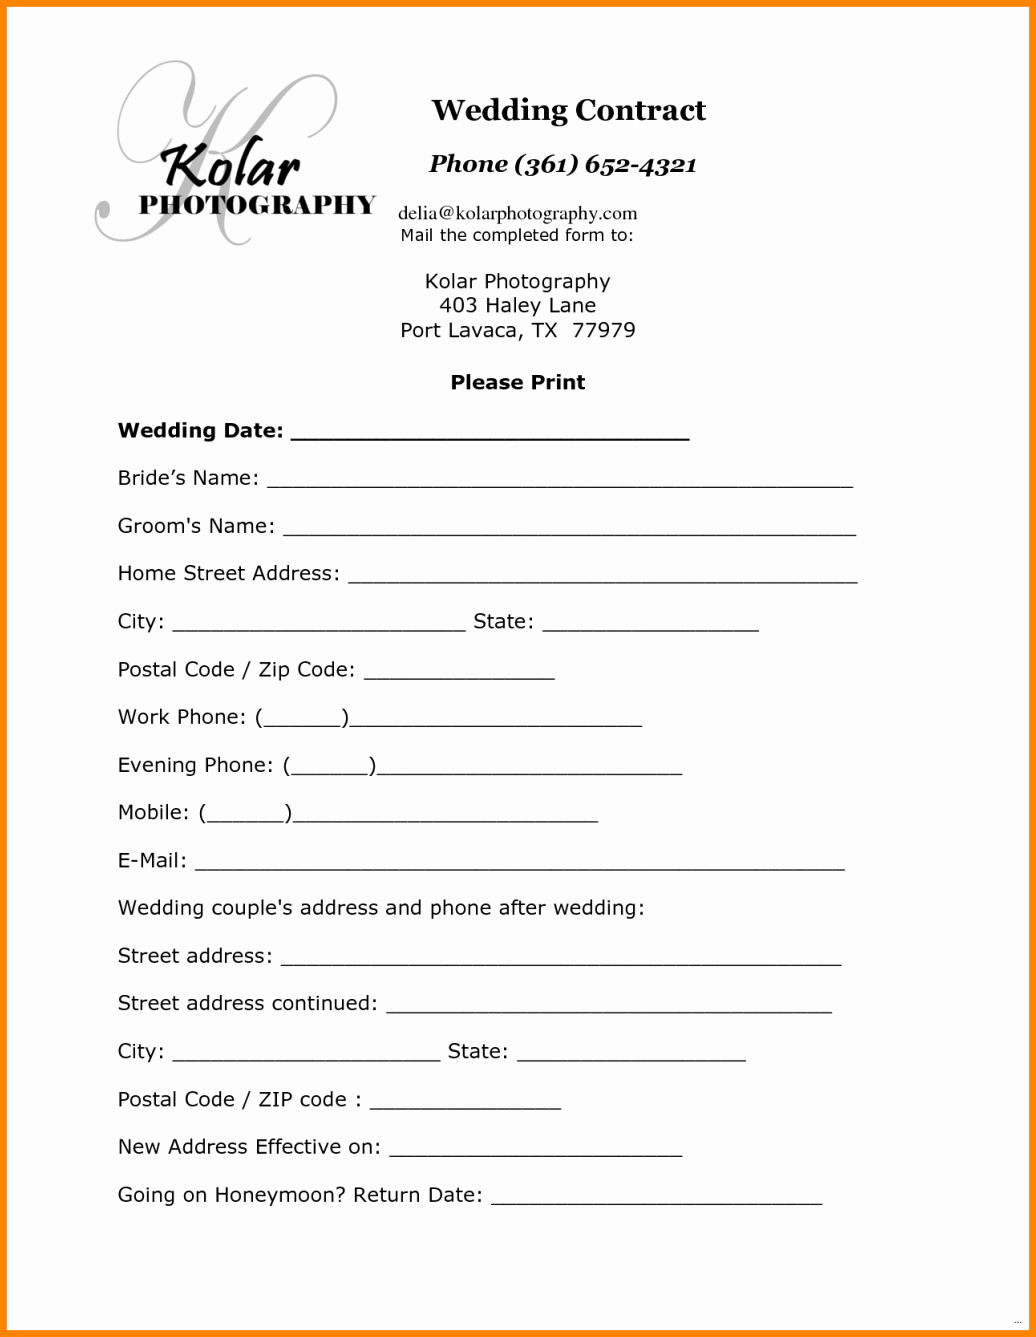 Simple Wedding Photography Contract Template Inspirational 12 Simple Photography Contract